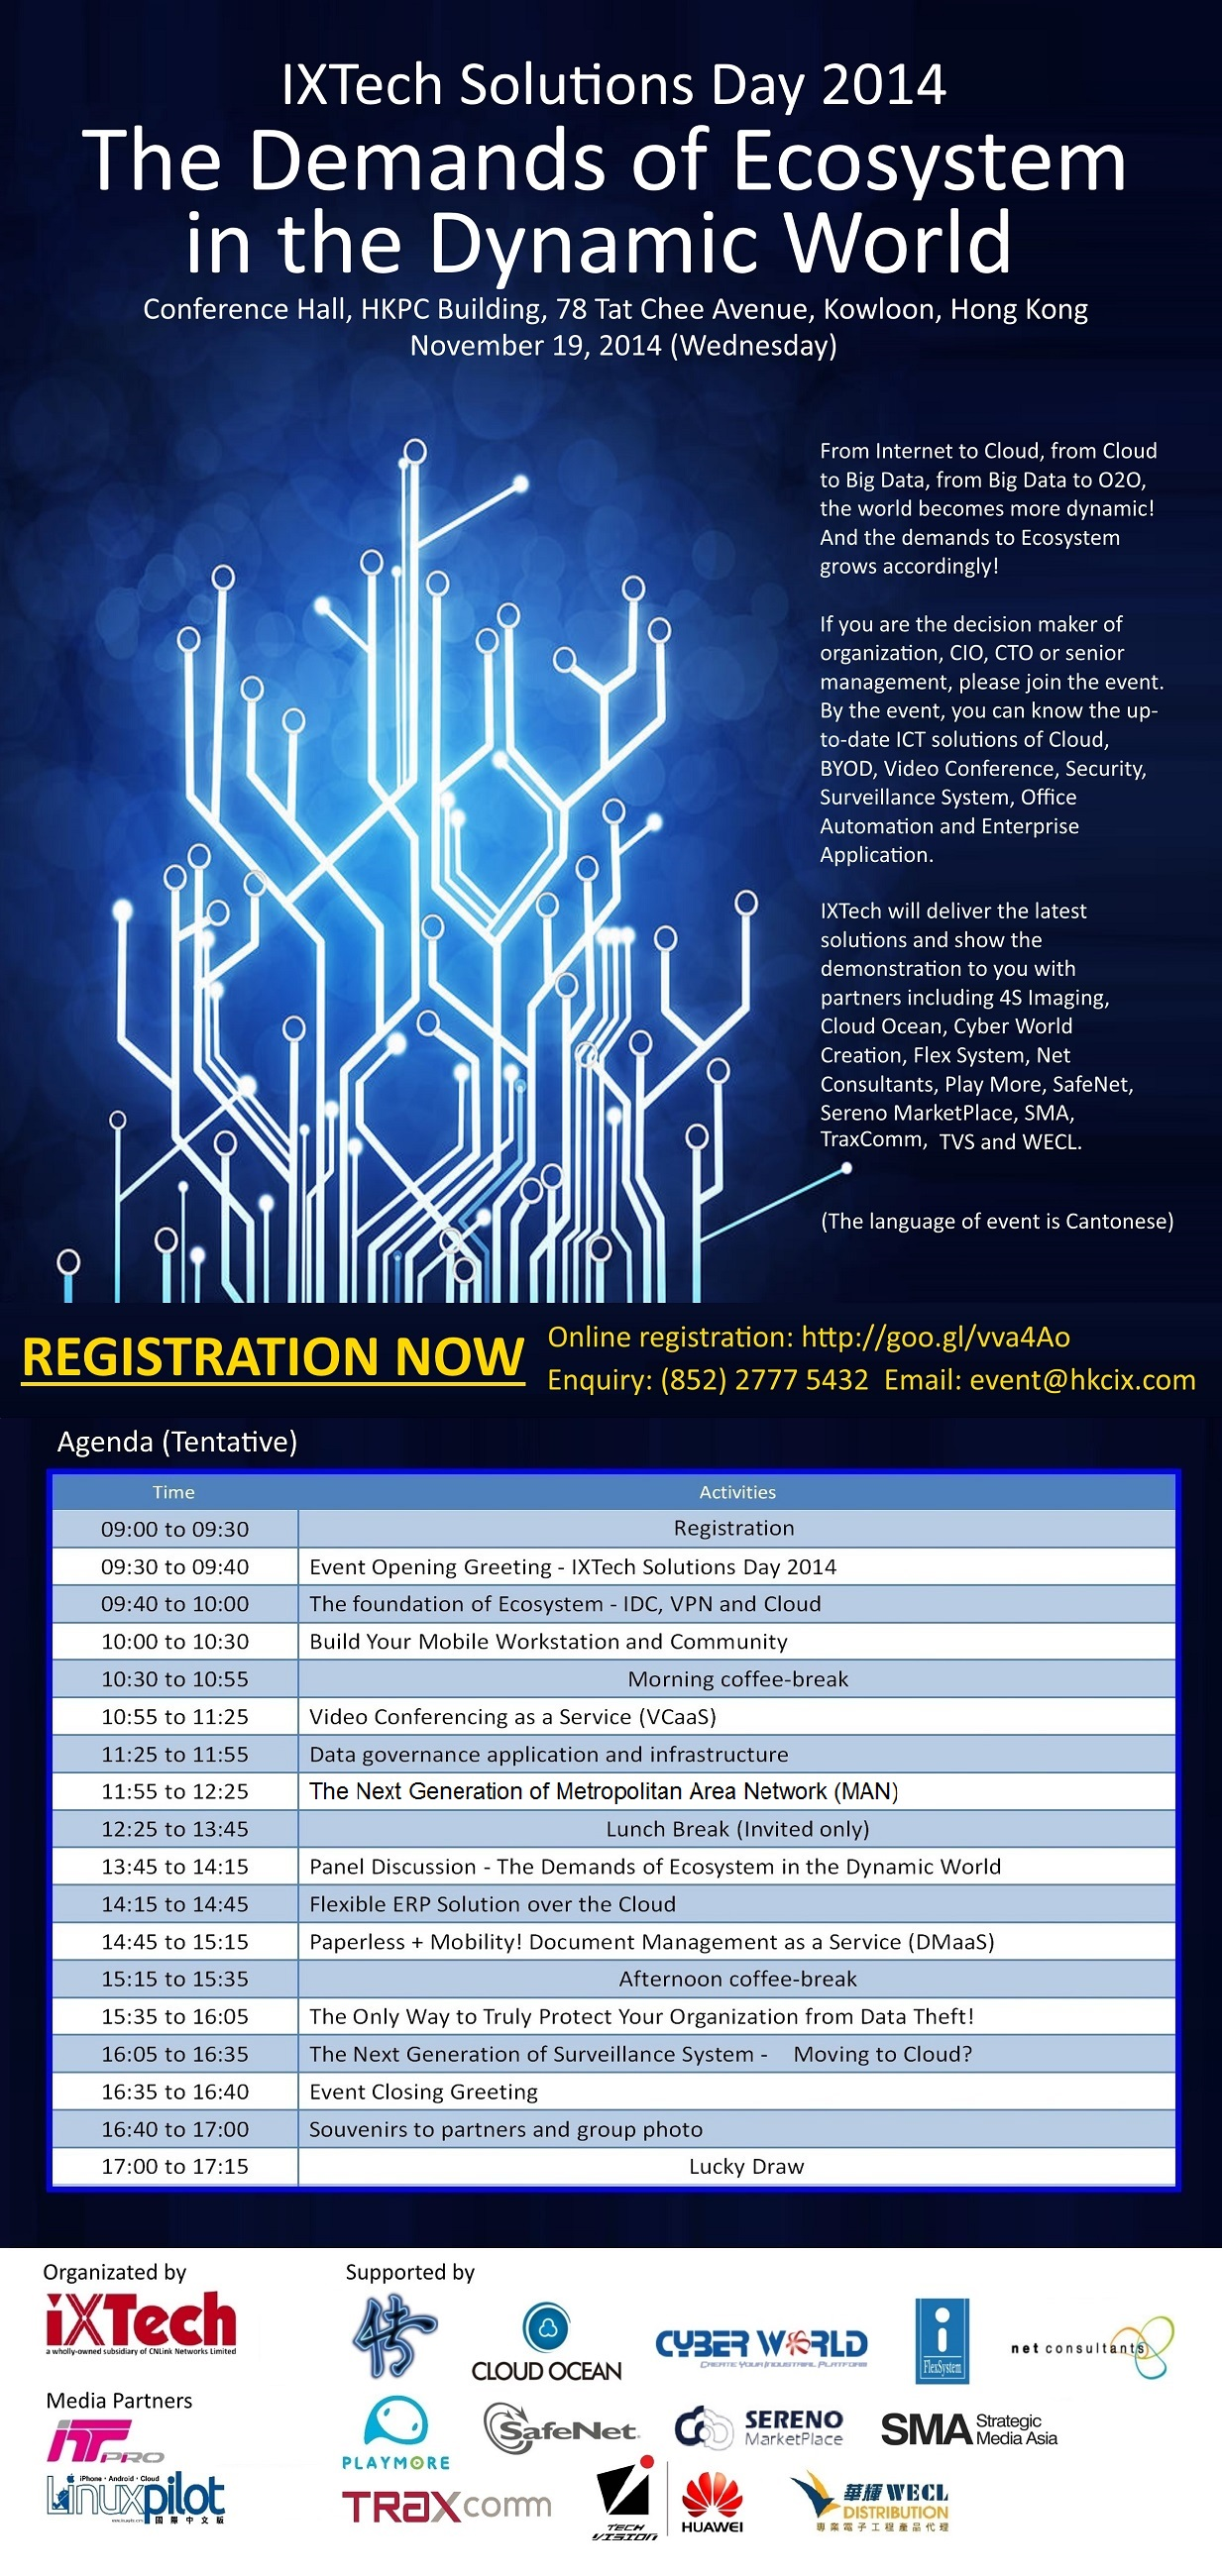 IXTech Solutions Day 2014 - The Demands of Ecosystem in the Dynamic World